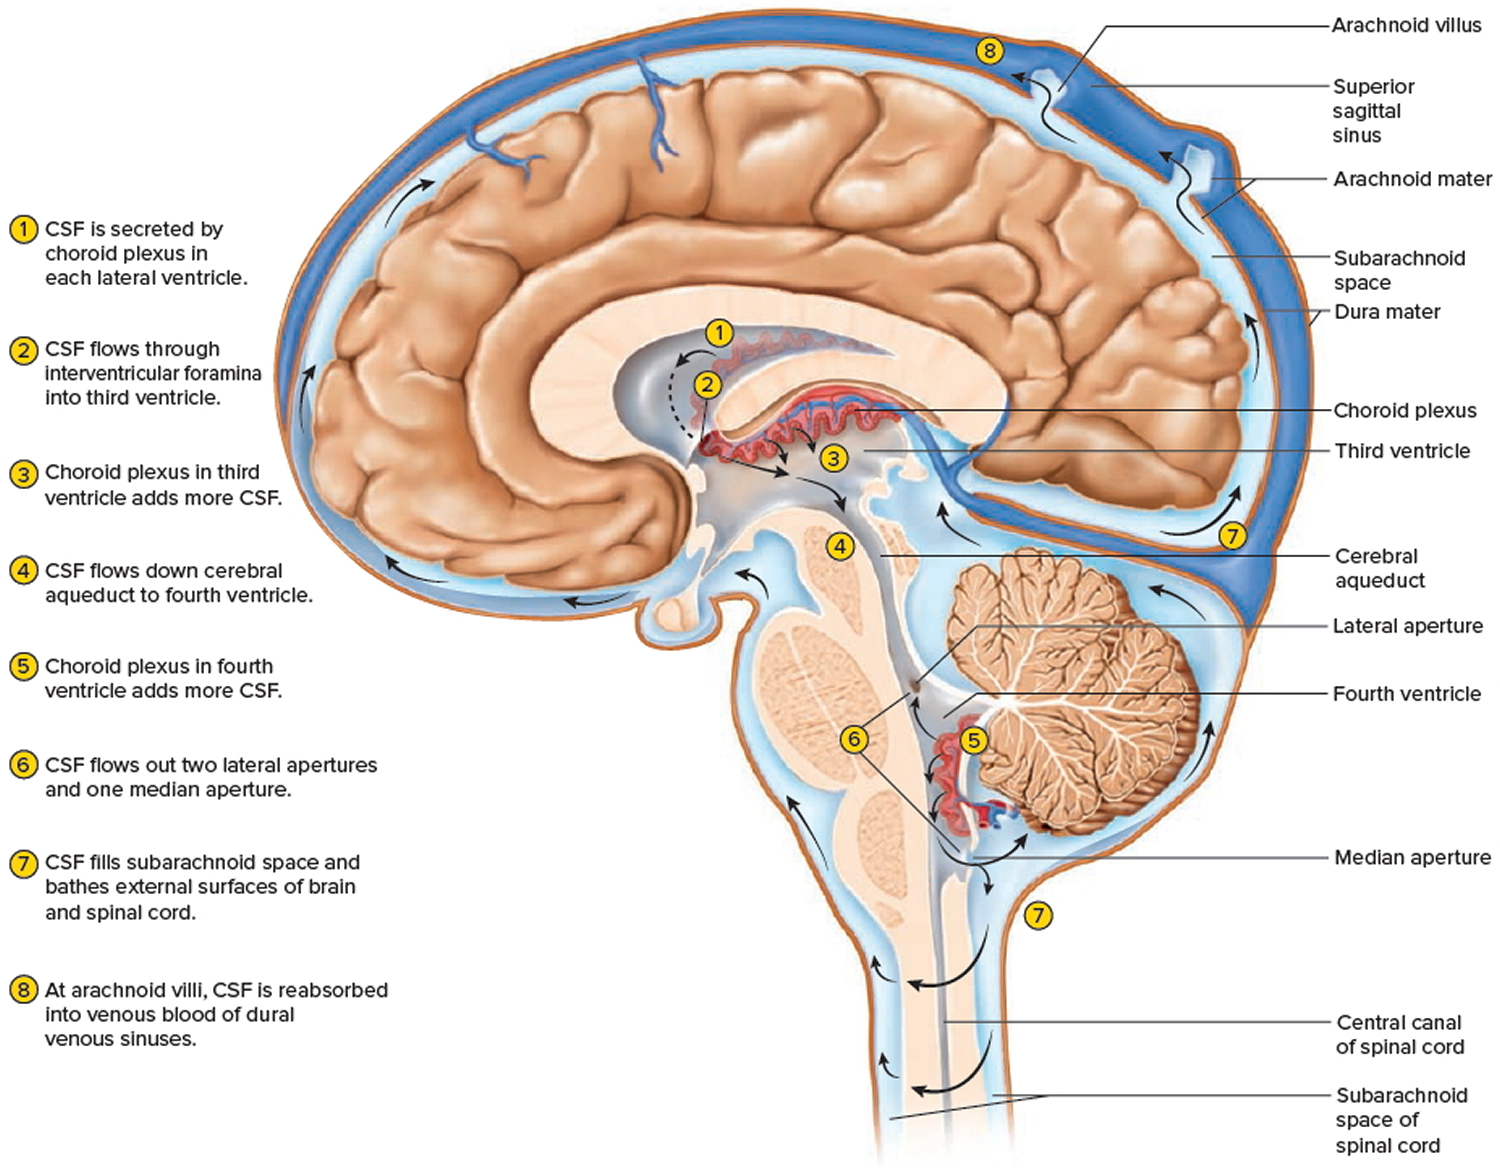 Cerebrospinal fluid formation and circulation in the brain